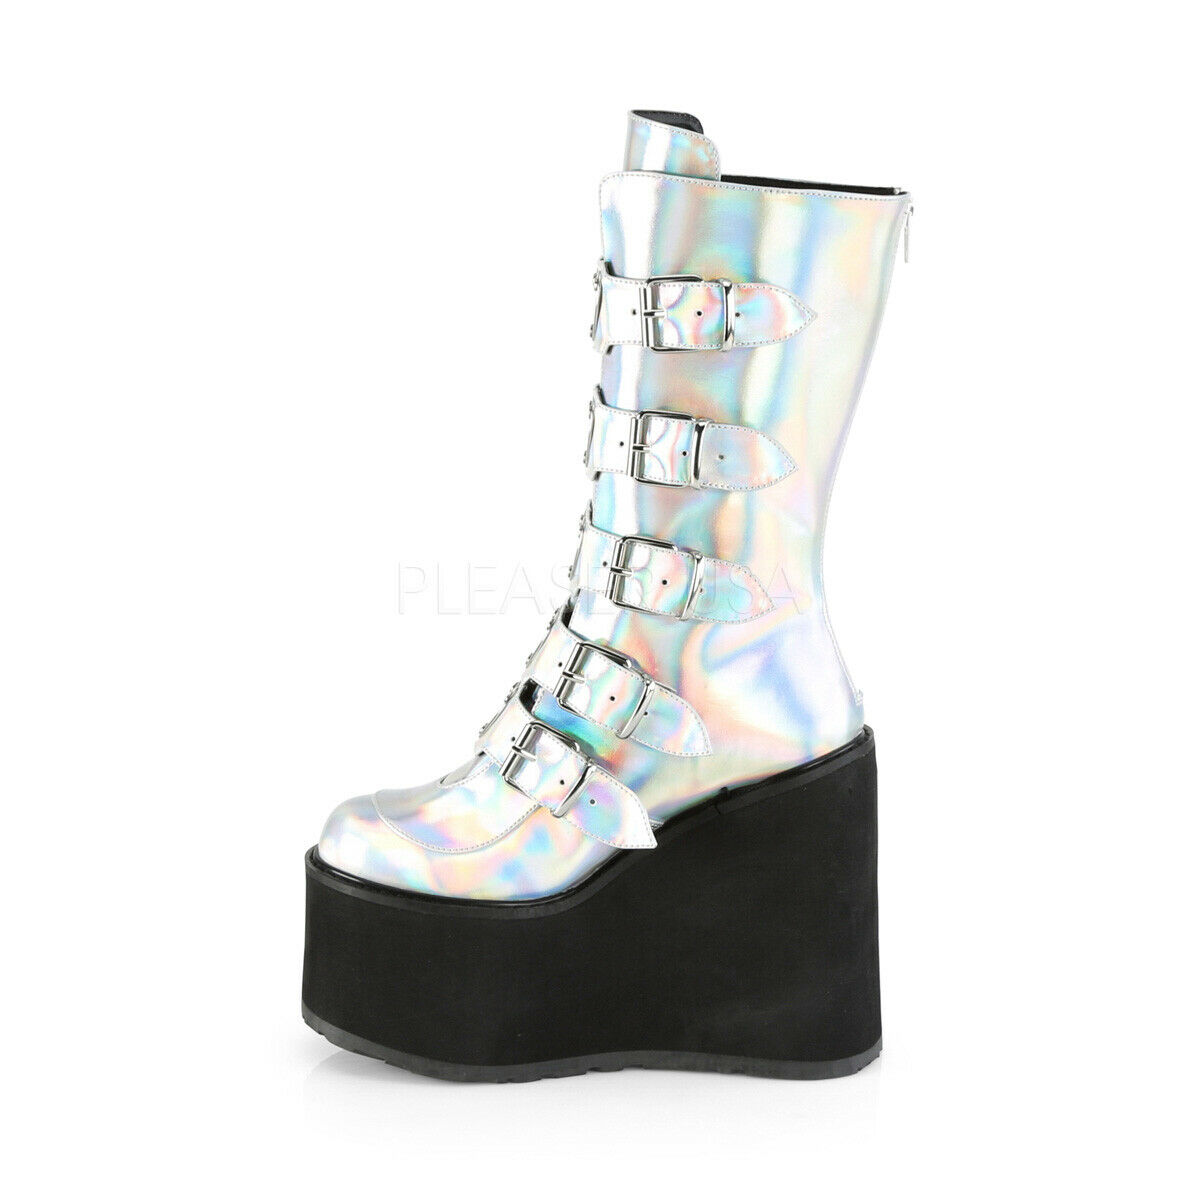 Swing 230 Silver Hologram Boot 5.5  Platform Heart Hologram Strap Design Goth